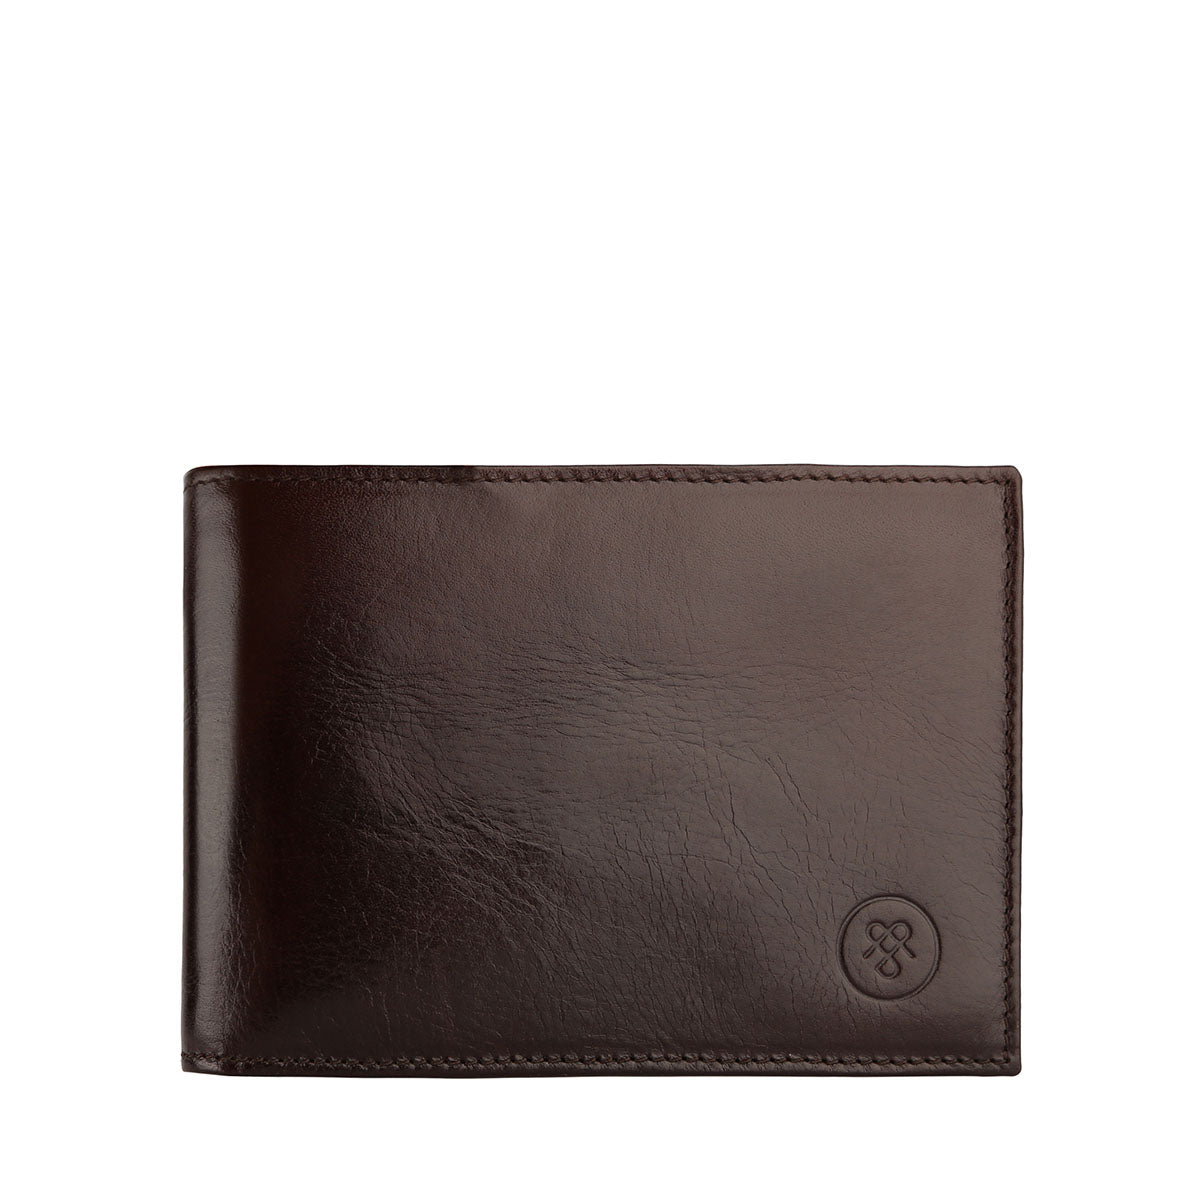 Image 1 of the 'Gallucio' Brown Veg-Tanned Leather Tri Fold Wallet